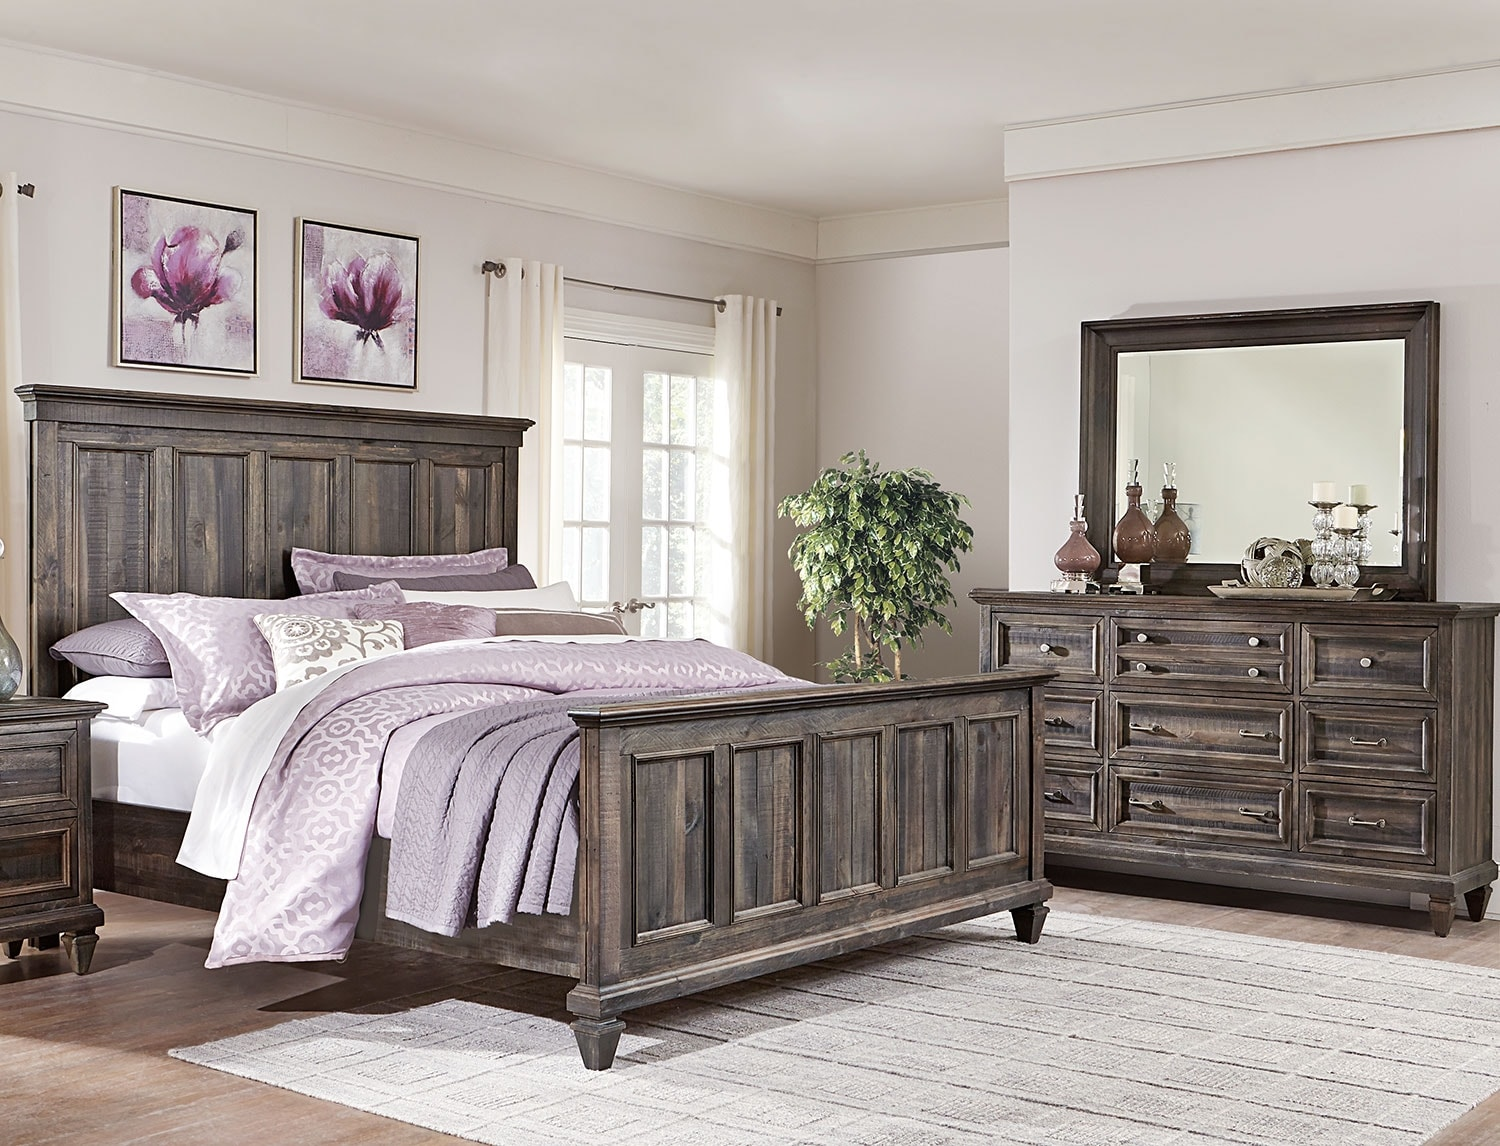 Bedroom Furniture - Calistoga 5-Piece King Bedroom Package - Weathered Charcoal